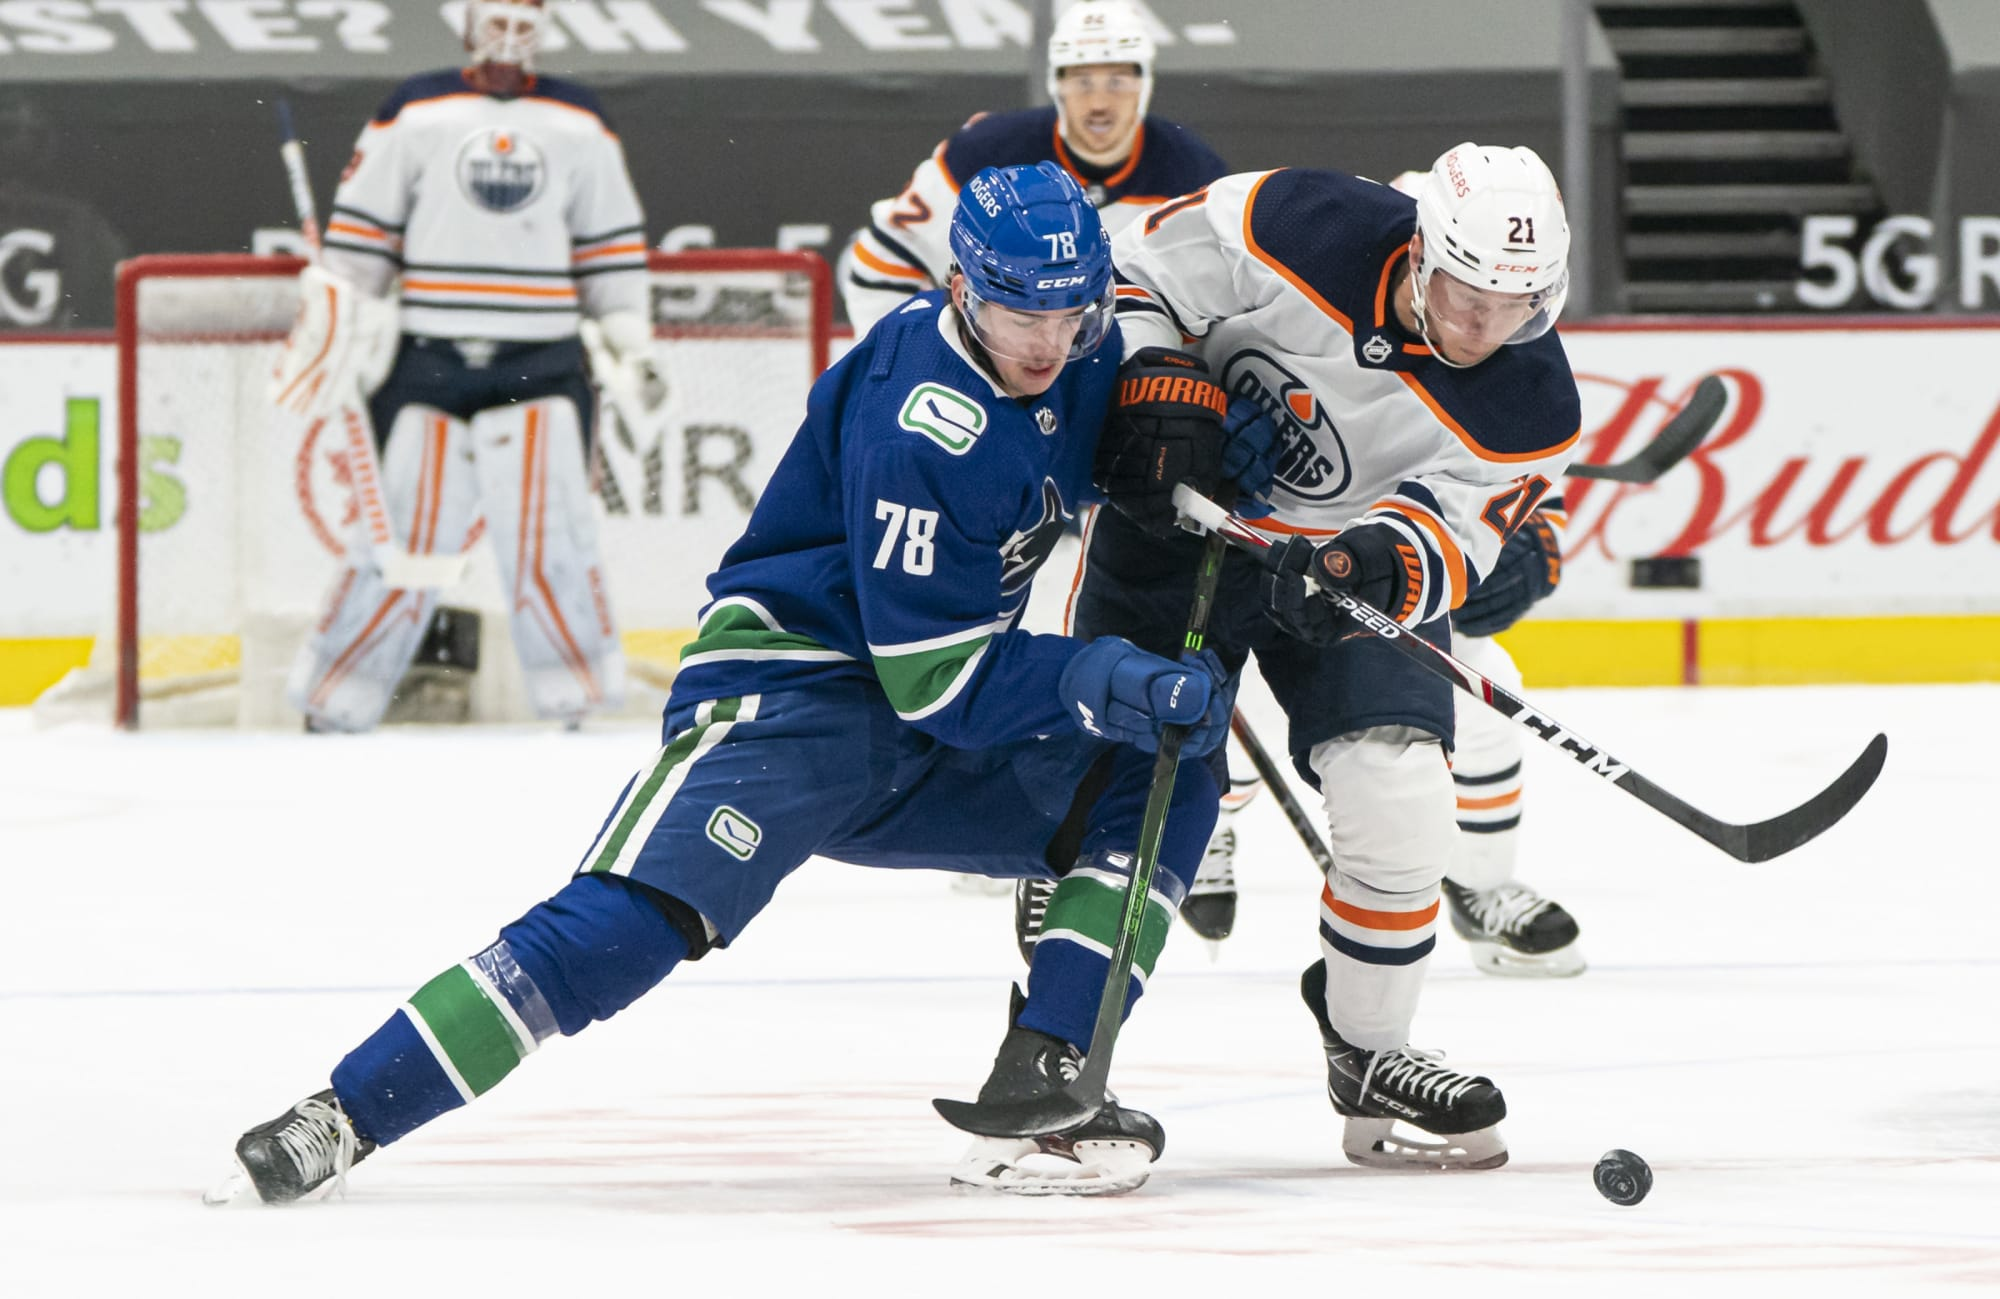 Canucks: 3 takeaways from the 4-1 loss to the Edmonton Oilers